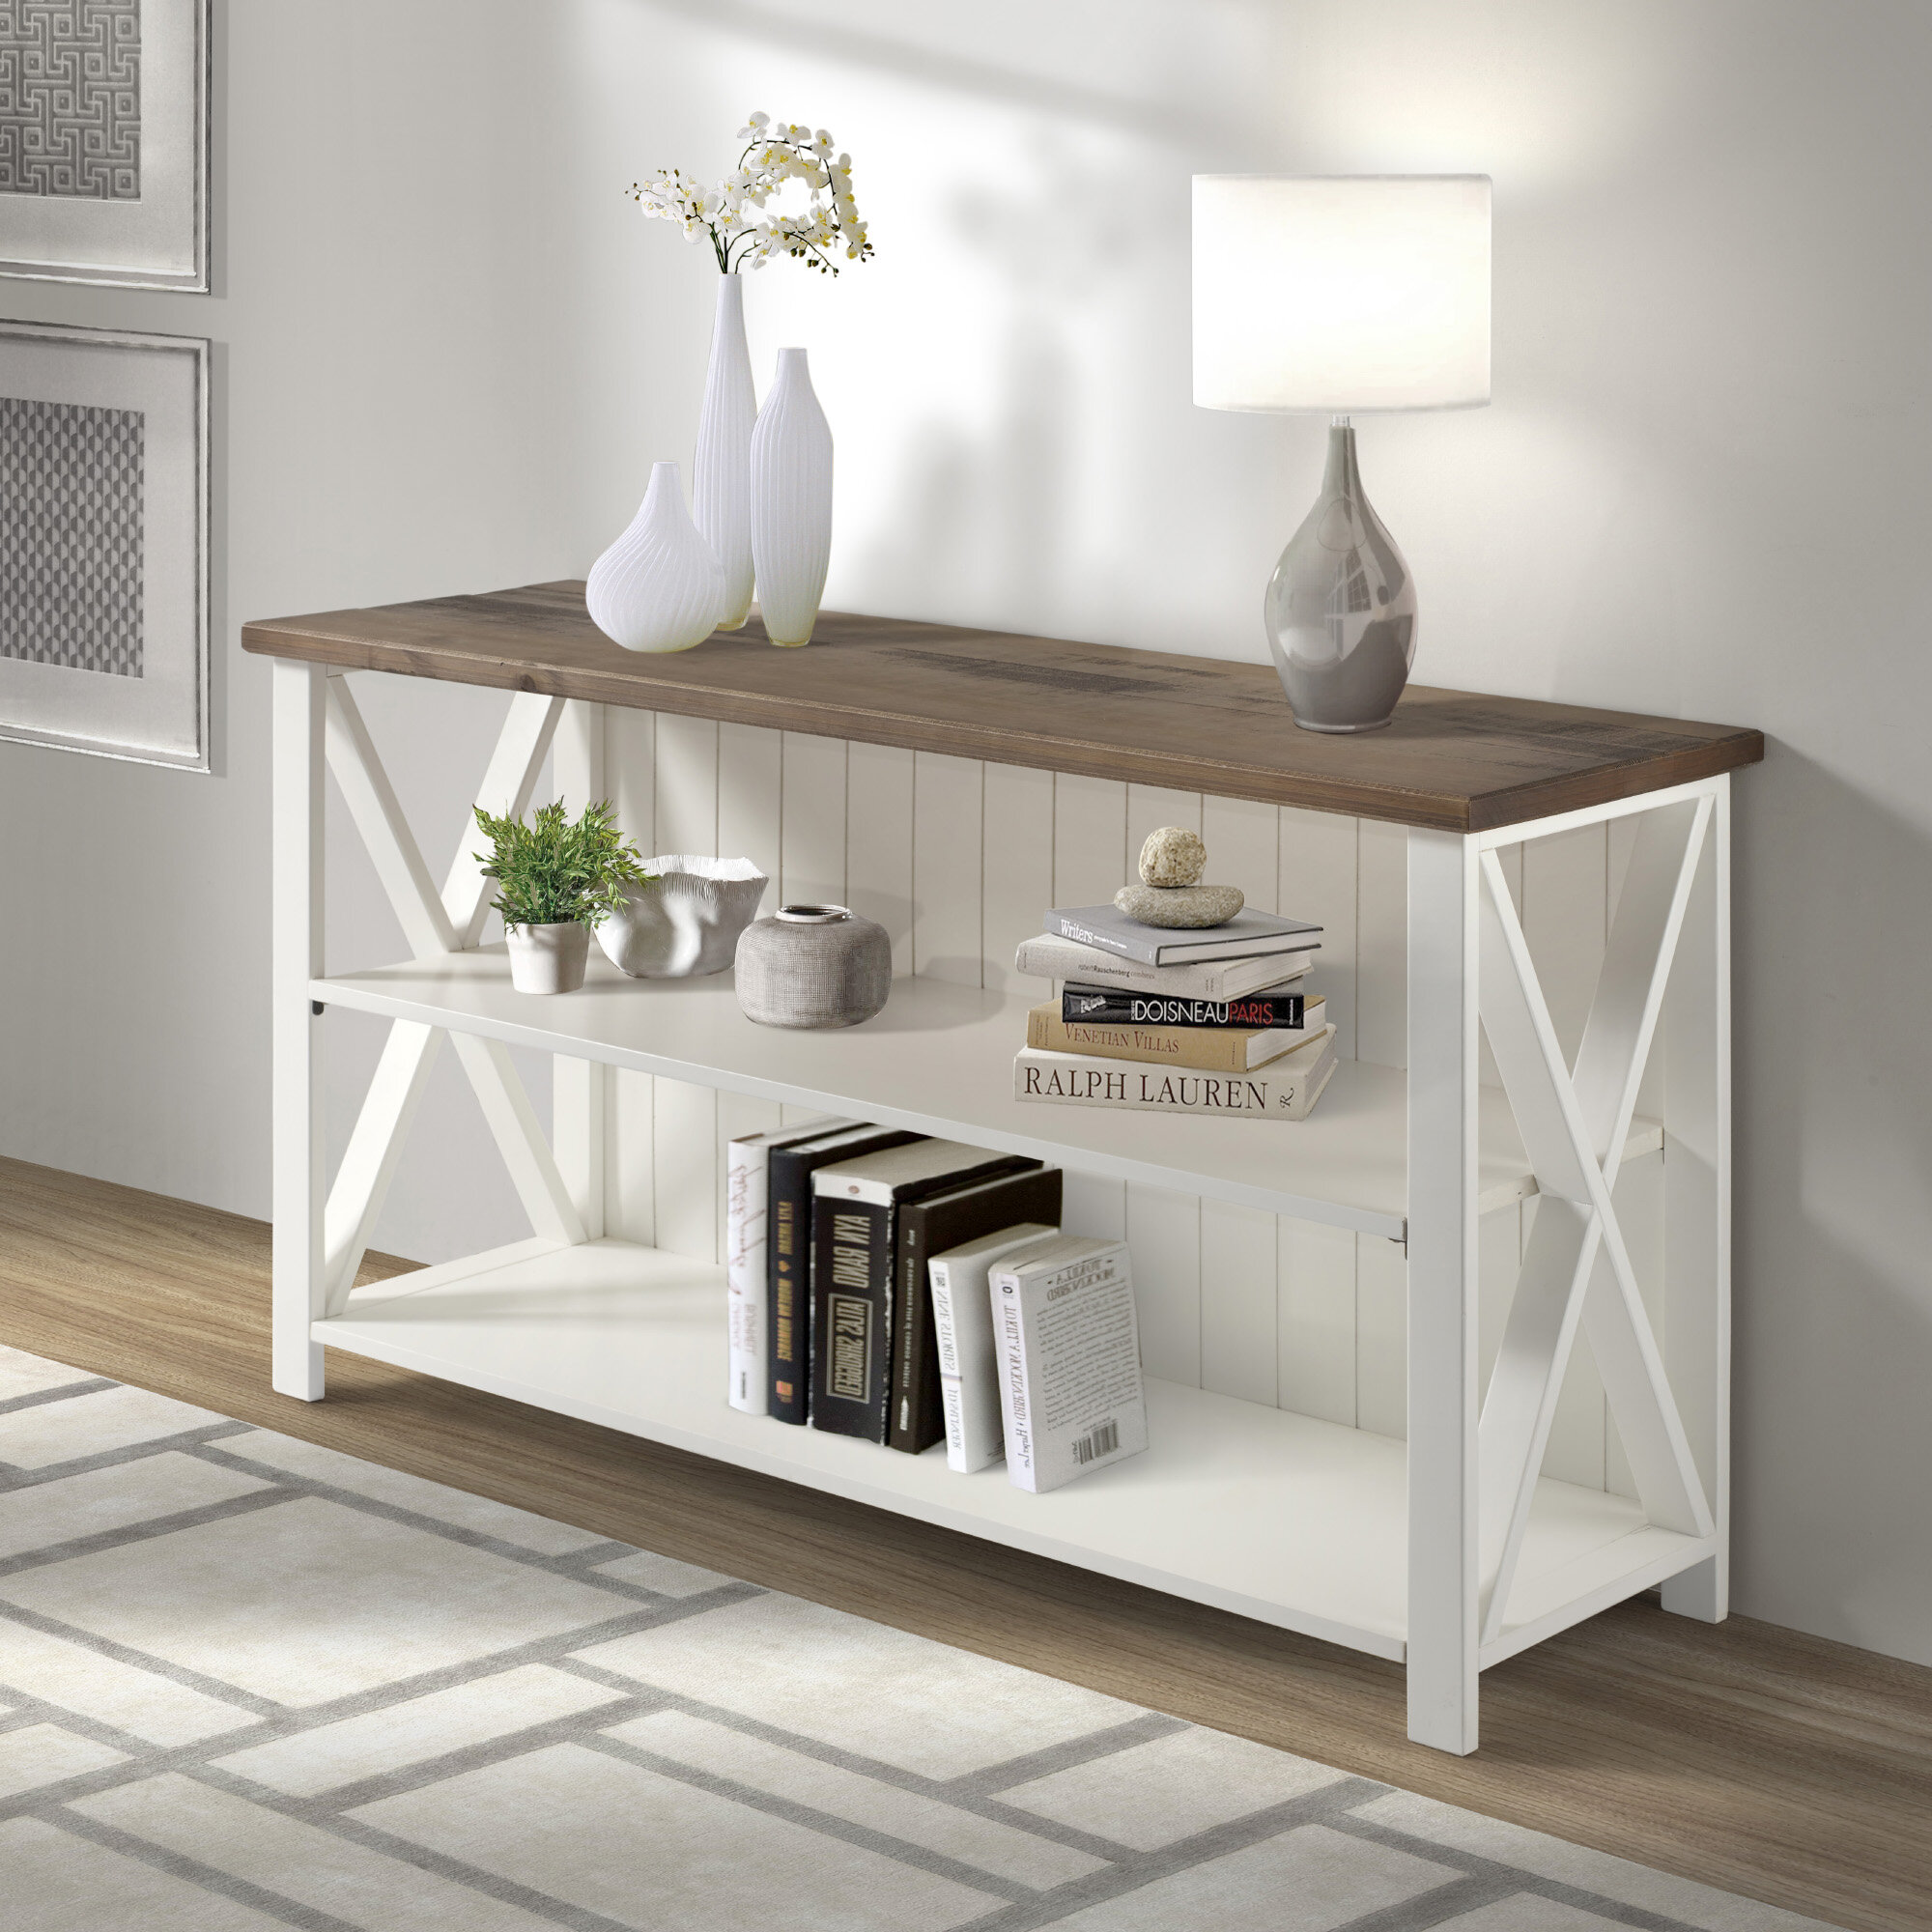 Laurel Foundry Modern Farmhouse Armando Solid Wood Tv Stand For Tvs Up To 58 Reviews Wayfair